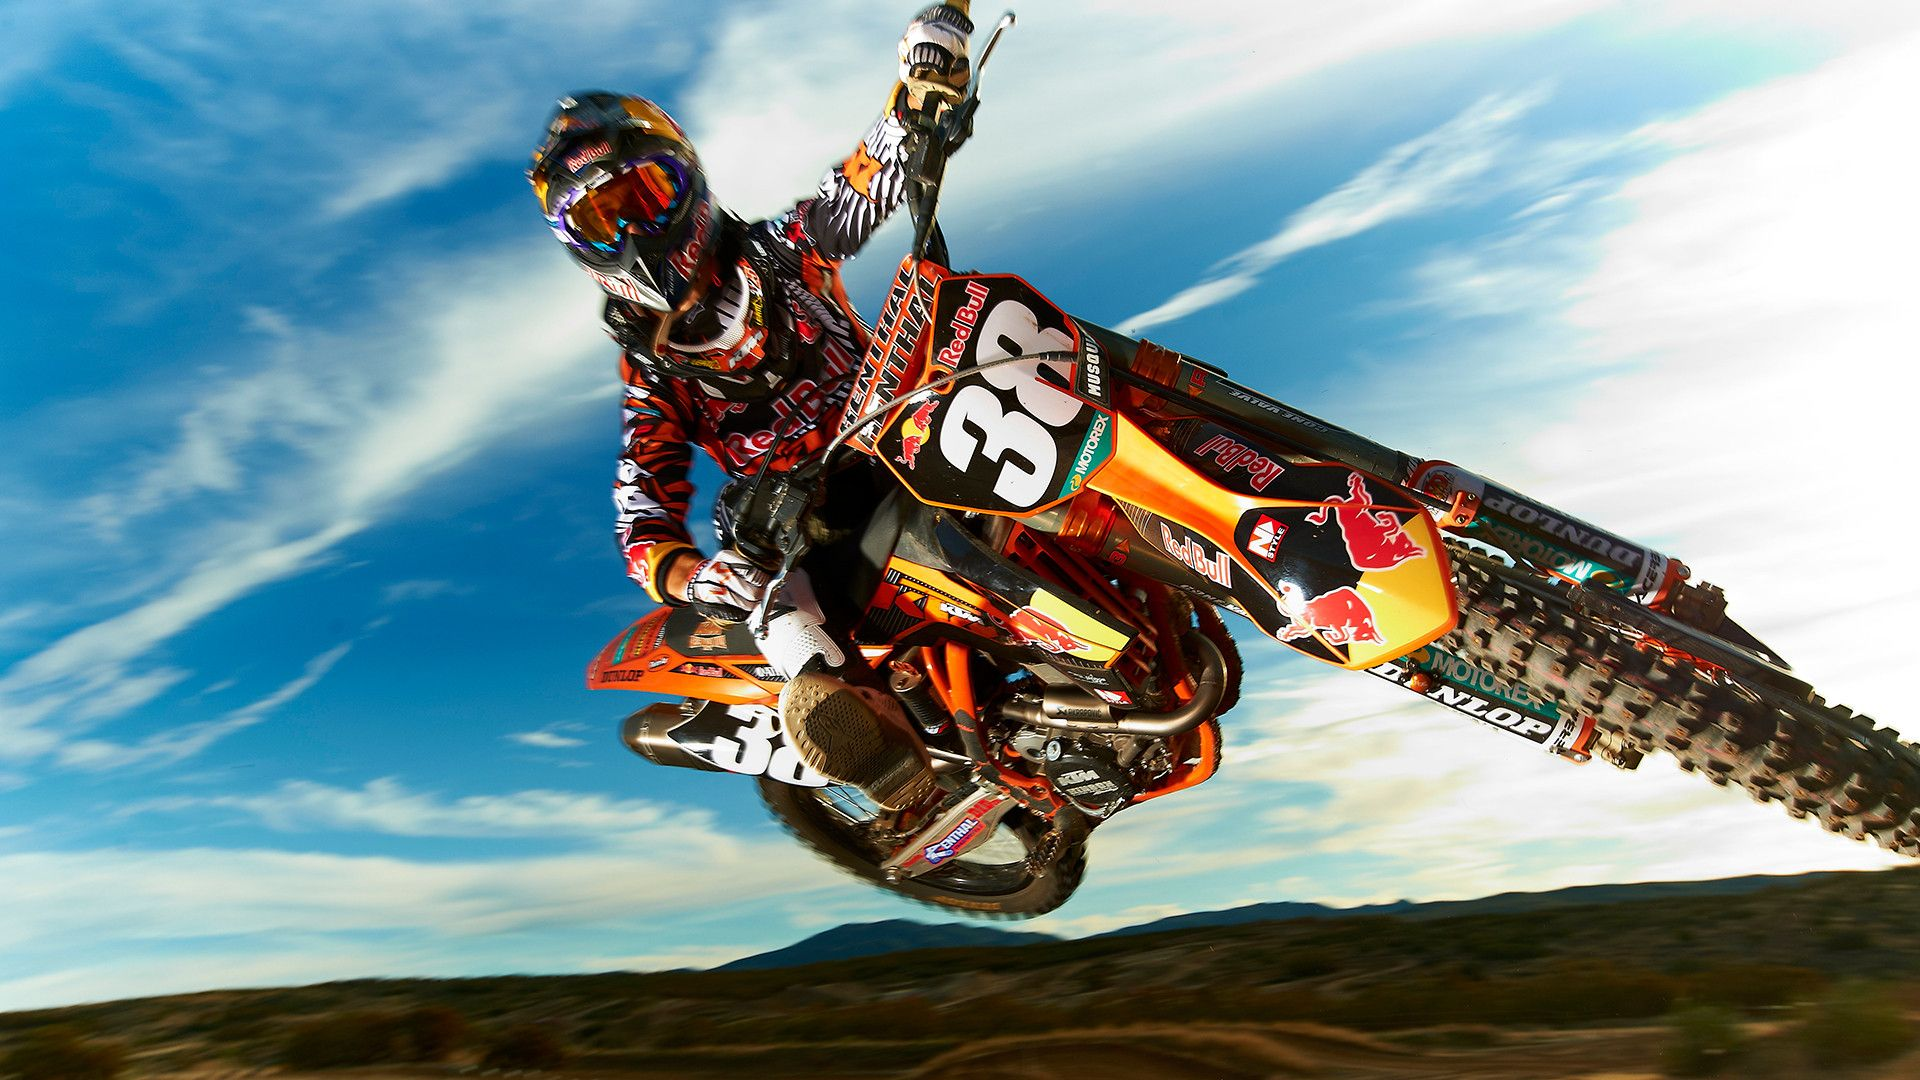 Transworld Motocross Wallpaper Hd Wallpapers Page Dirt